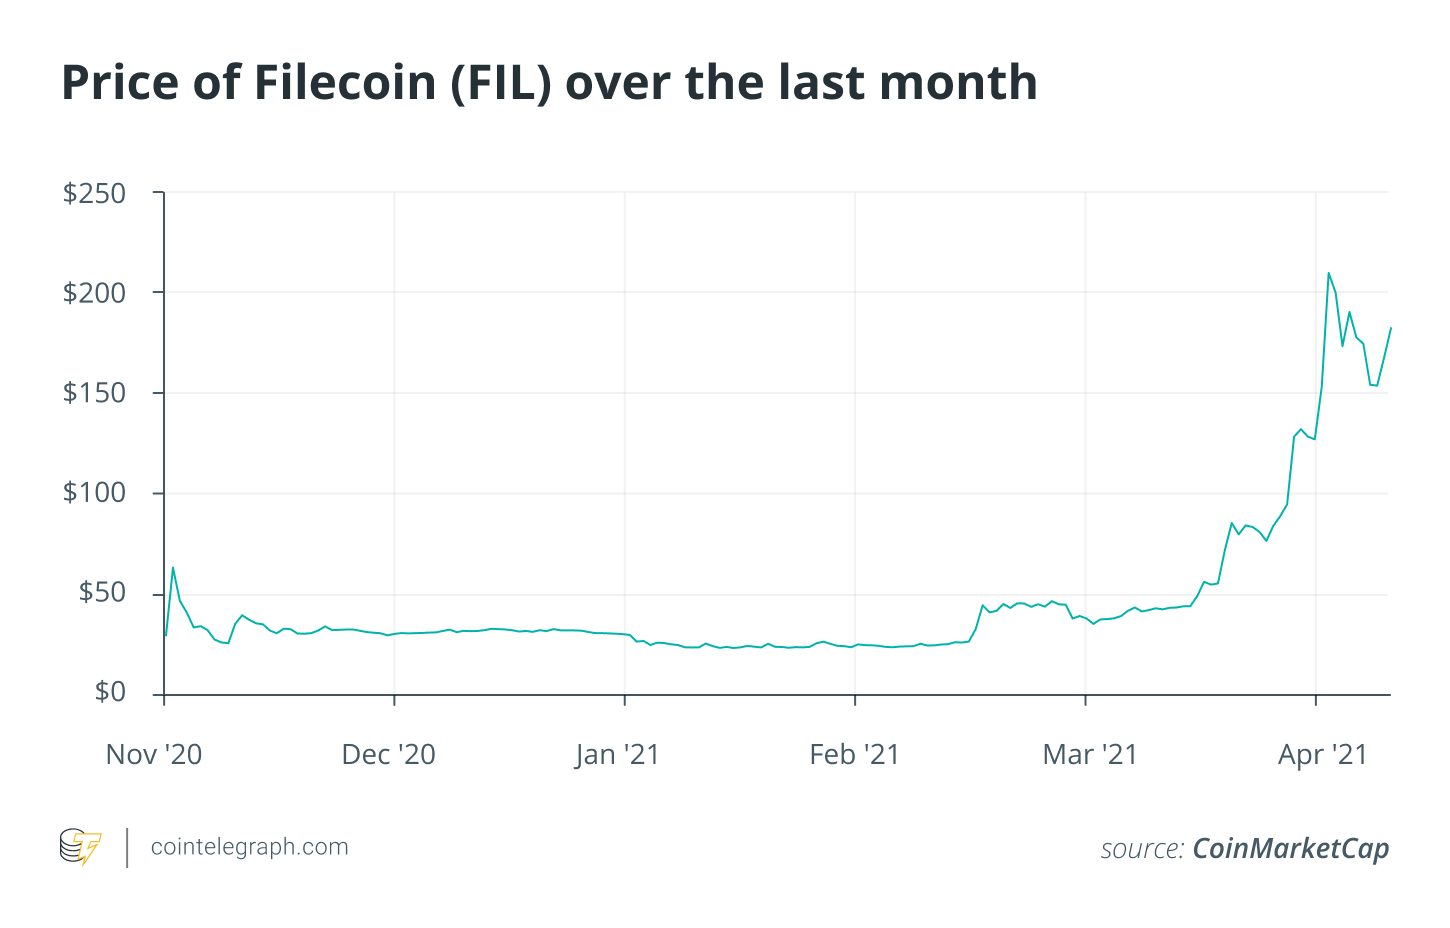 Filecoin's upcoming production cut alters tokenomics